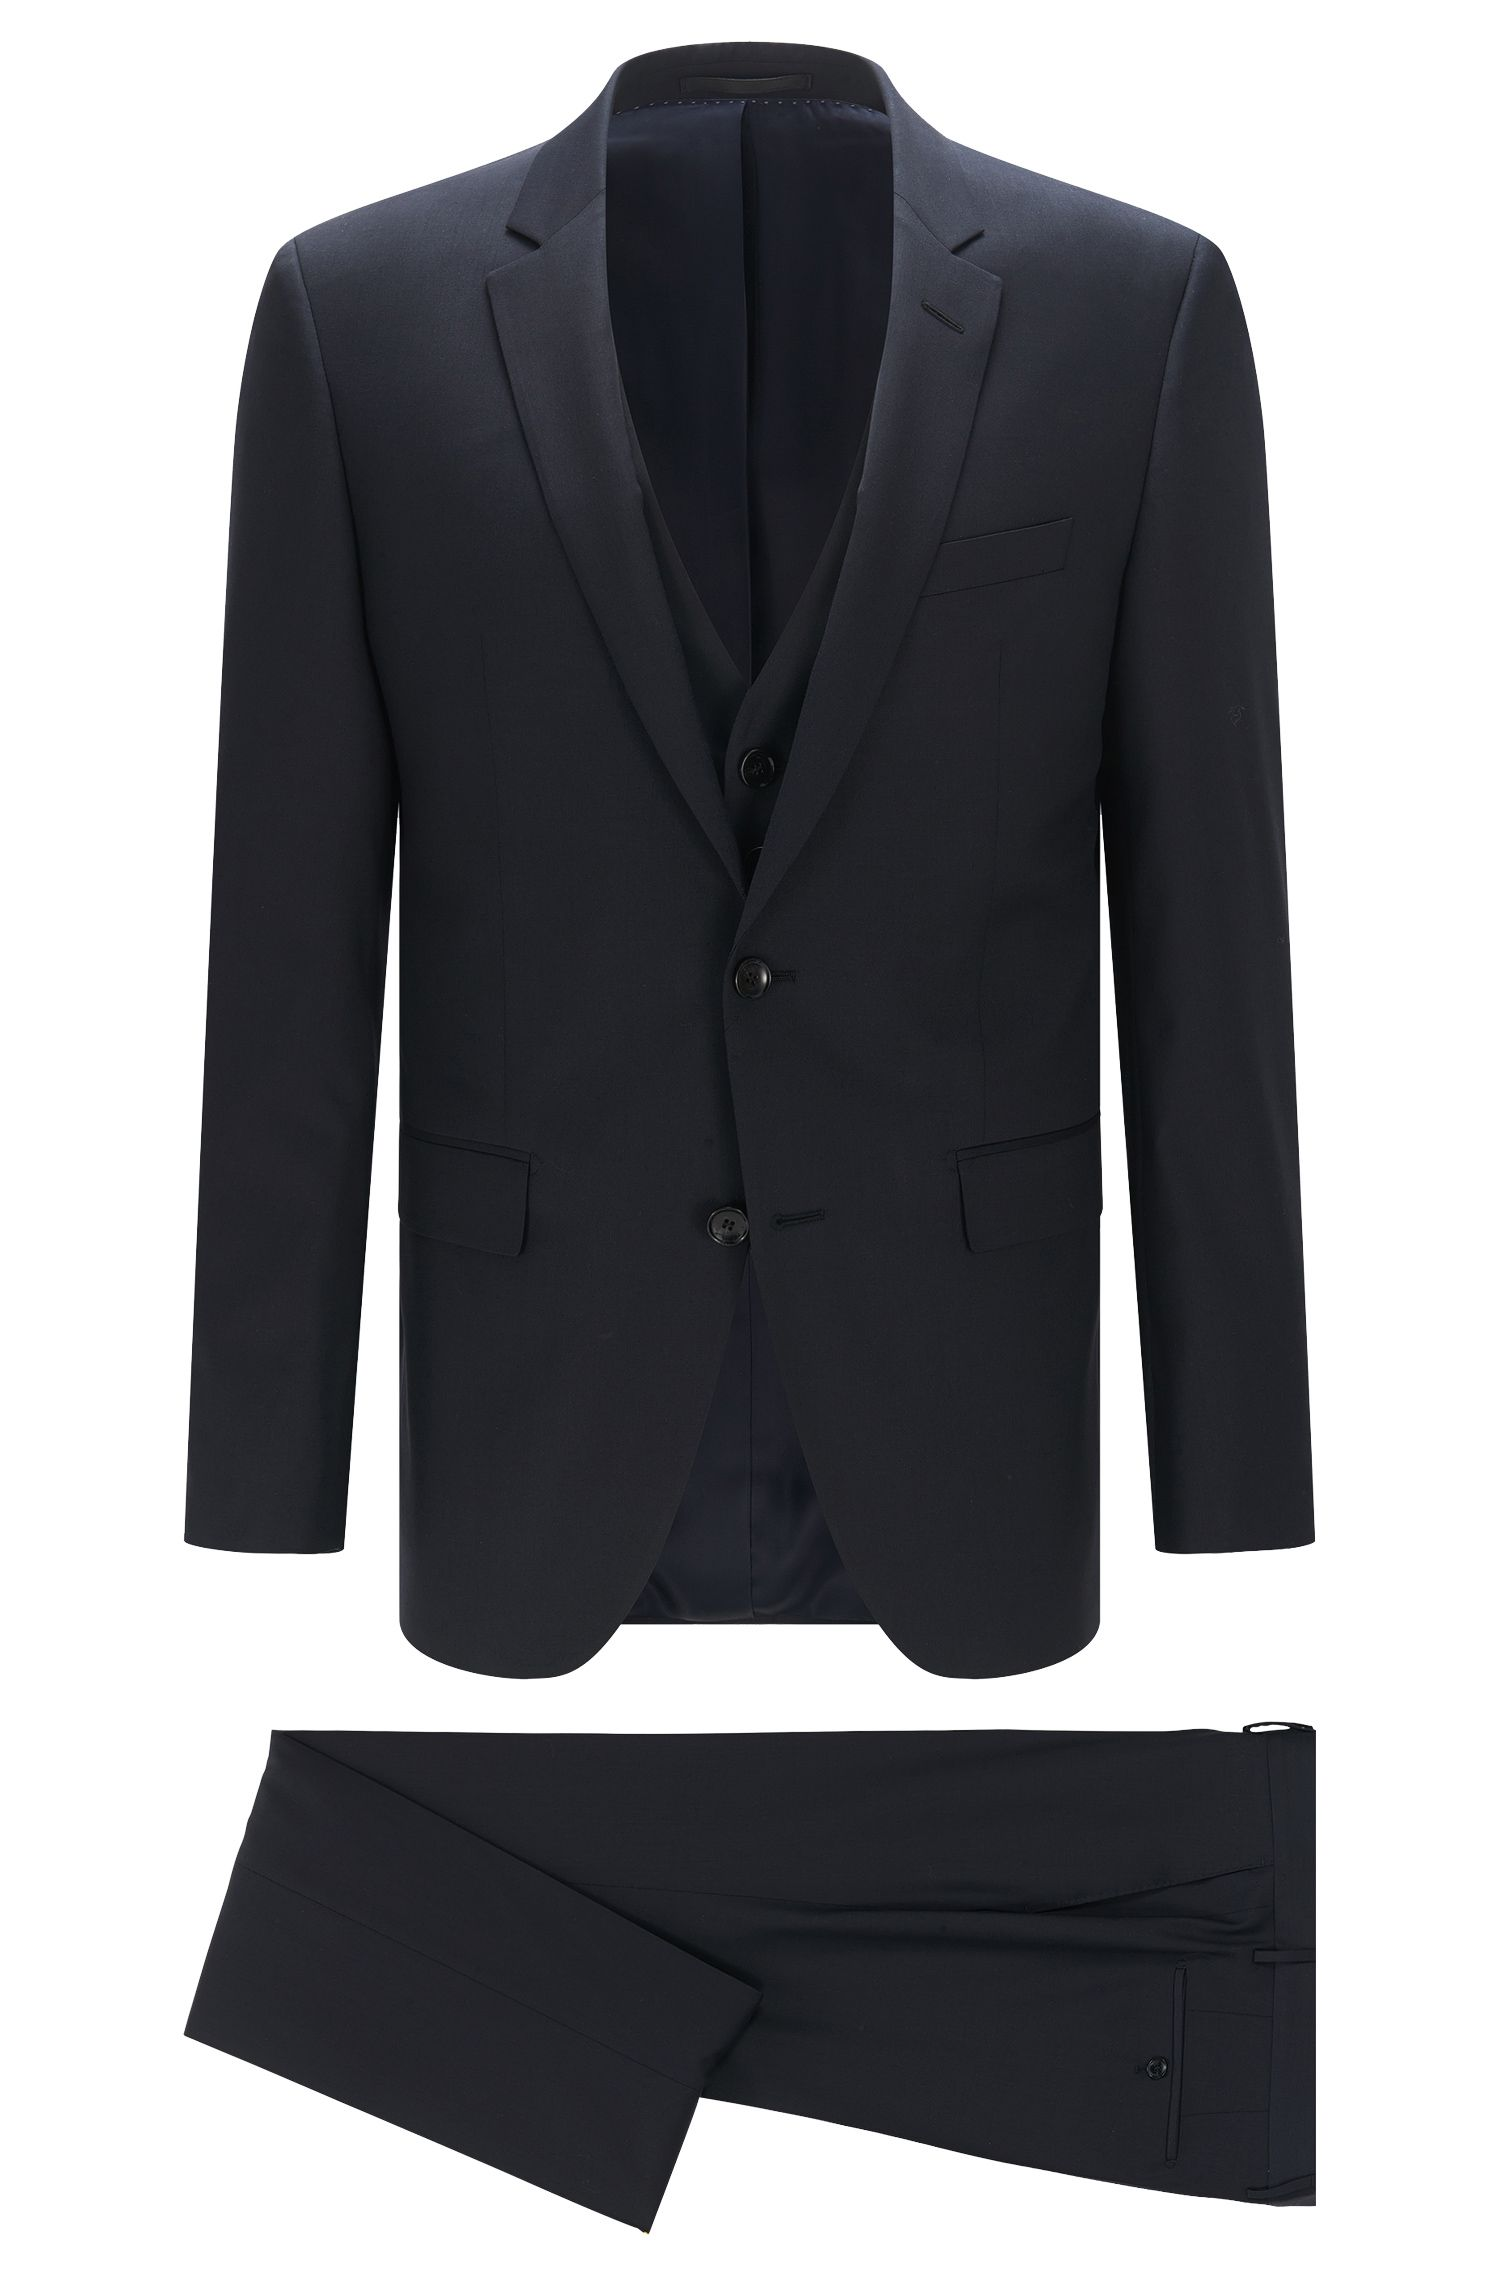 Costume Slim Fit Tailored en laine vierge : « T-Harvers2/Glover1WE3 »